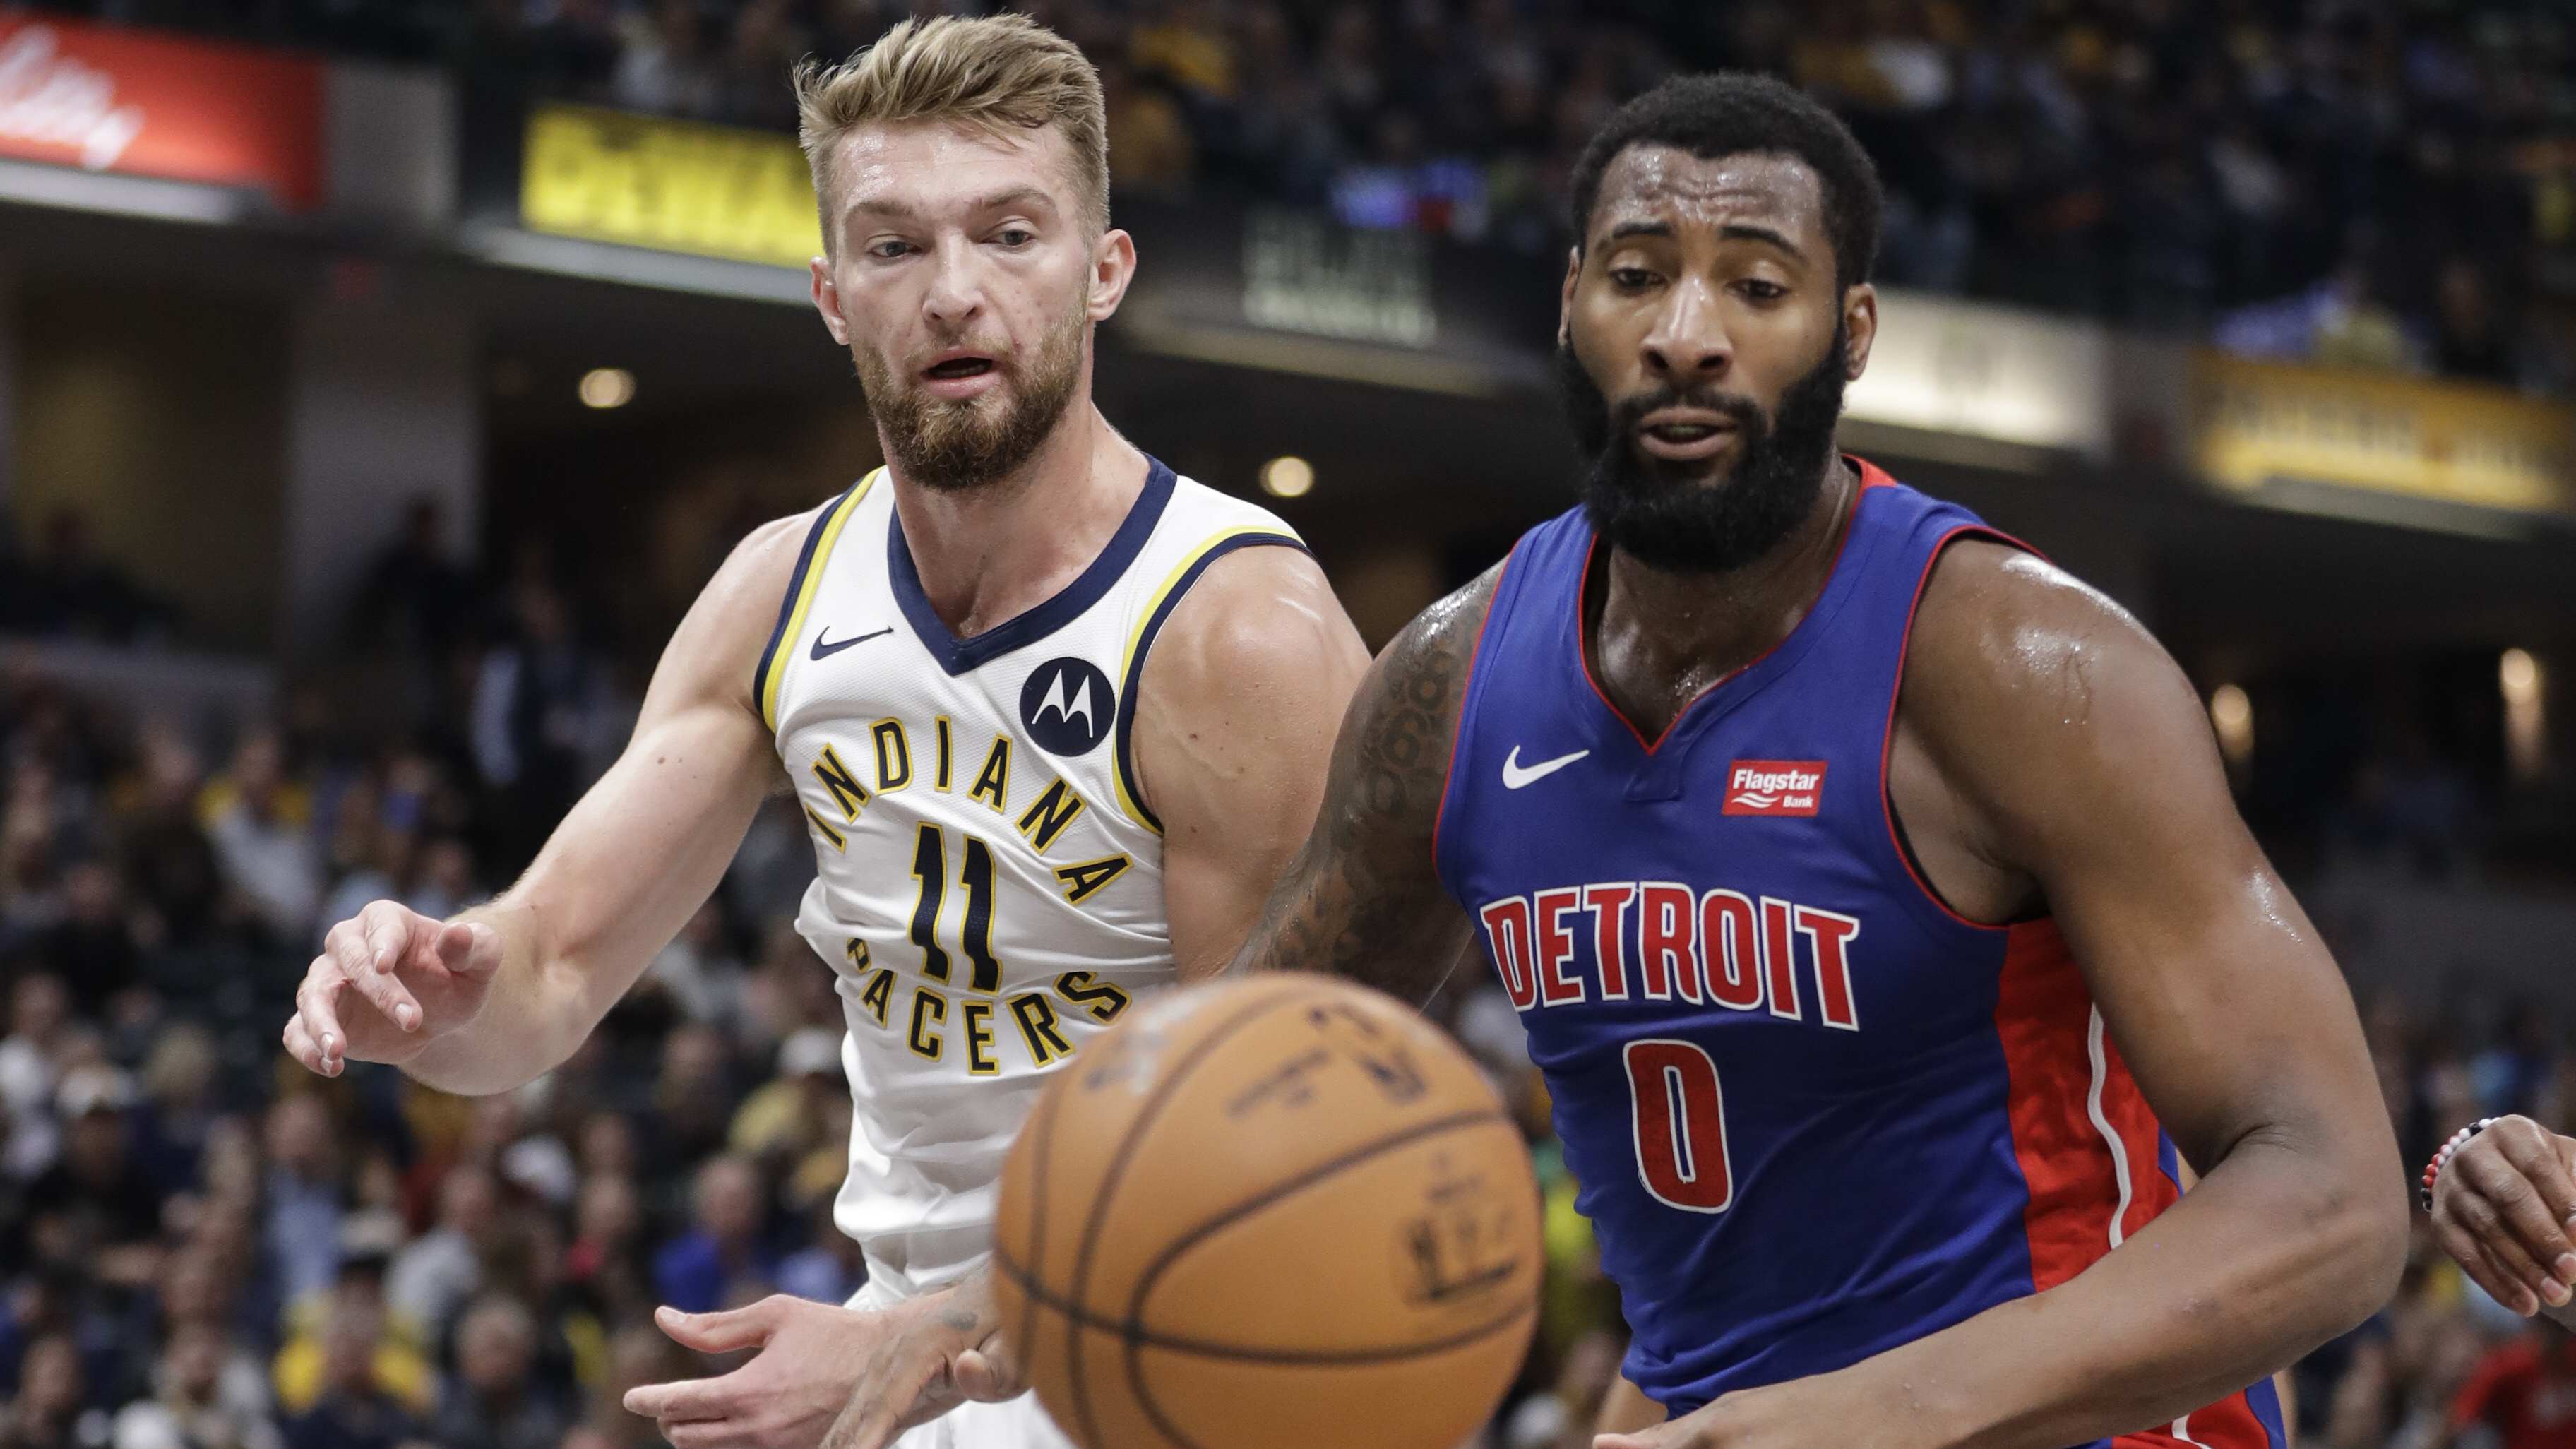 Pacers can't contain Drummond, fall 119-110 to Pistons in season opener